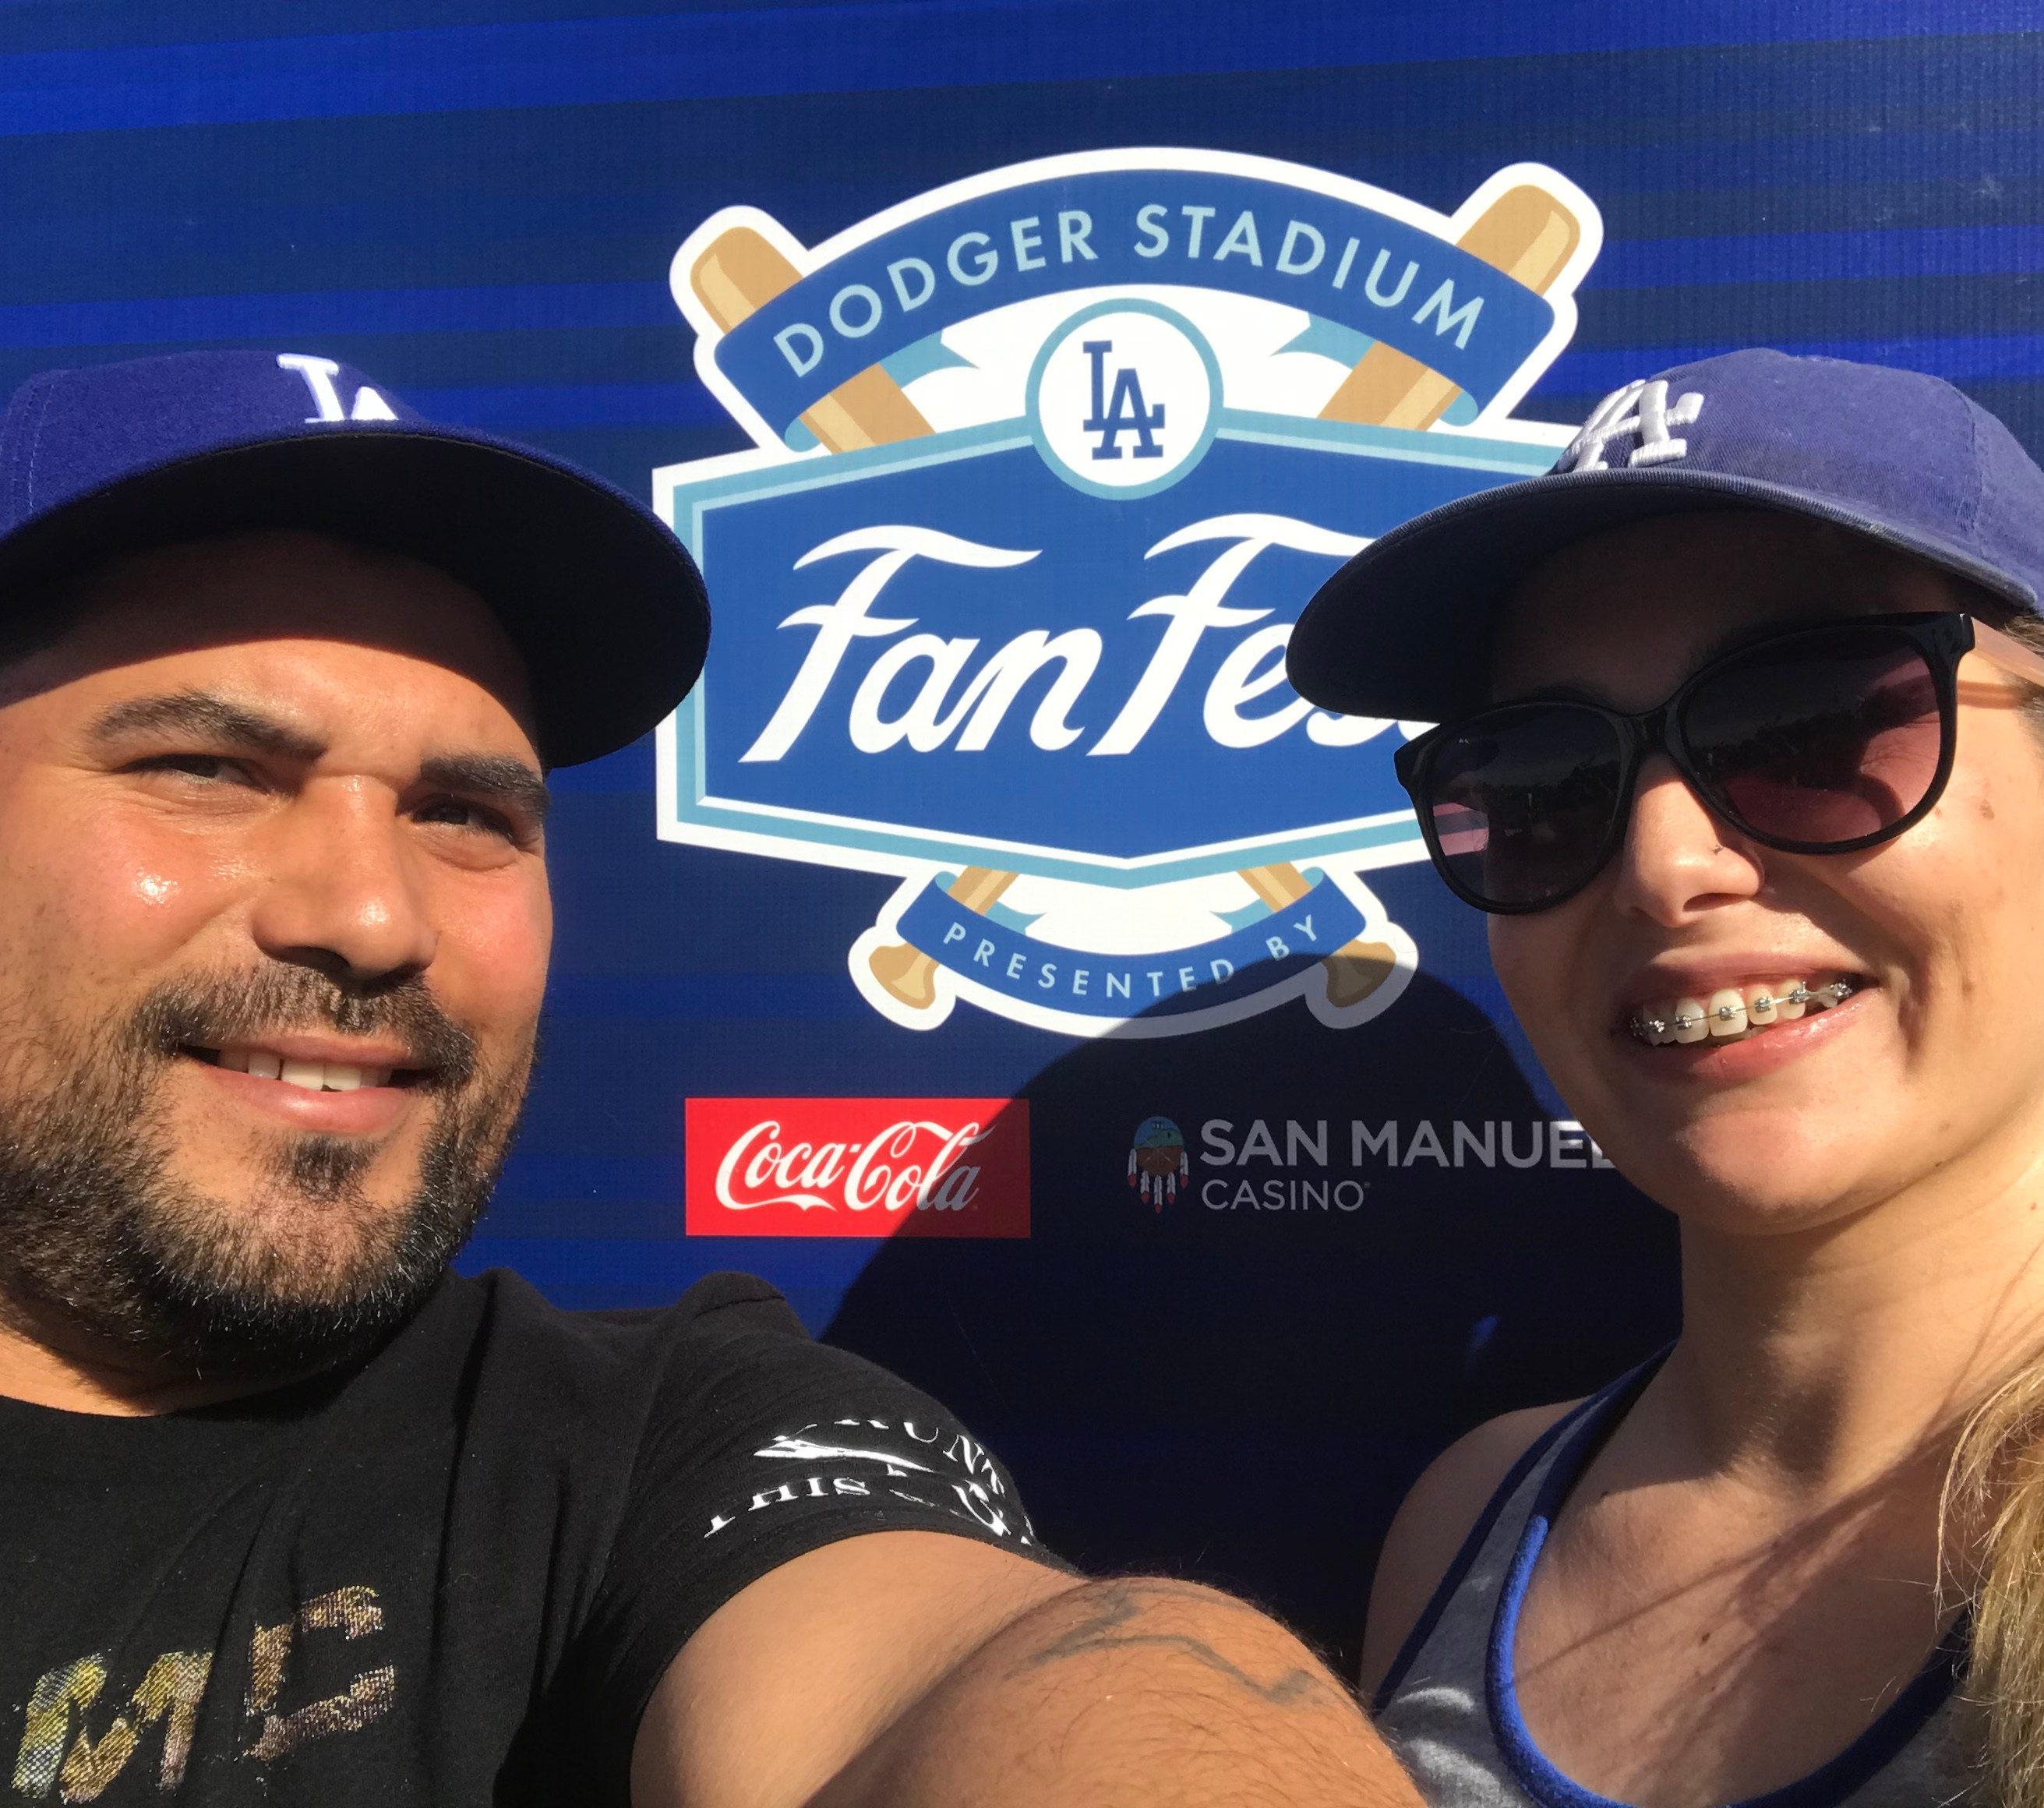 Dodger Stadium Fan Fest 2019